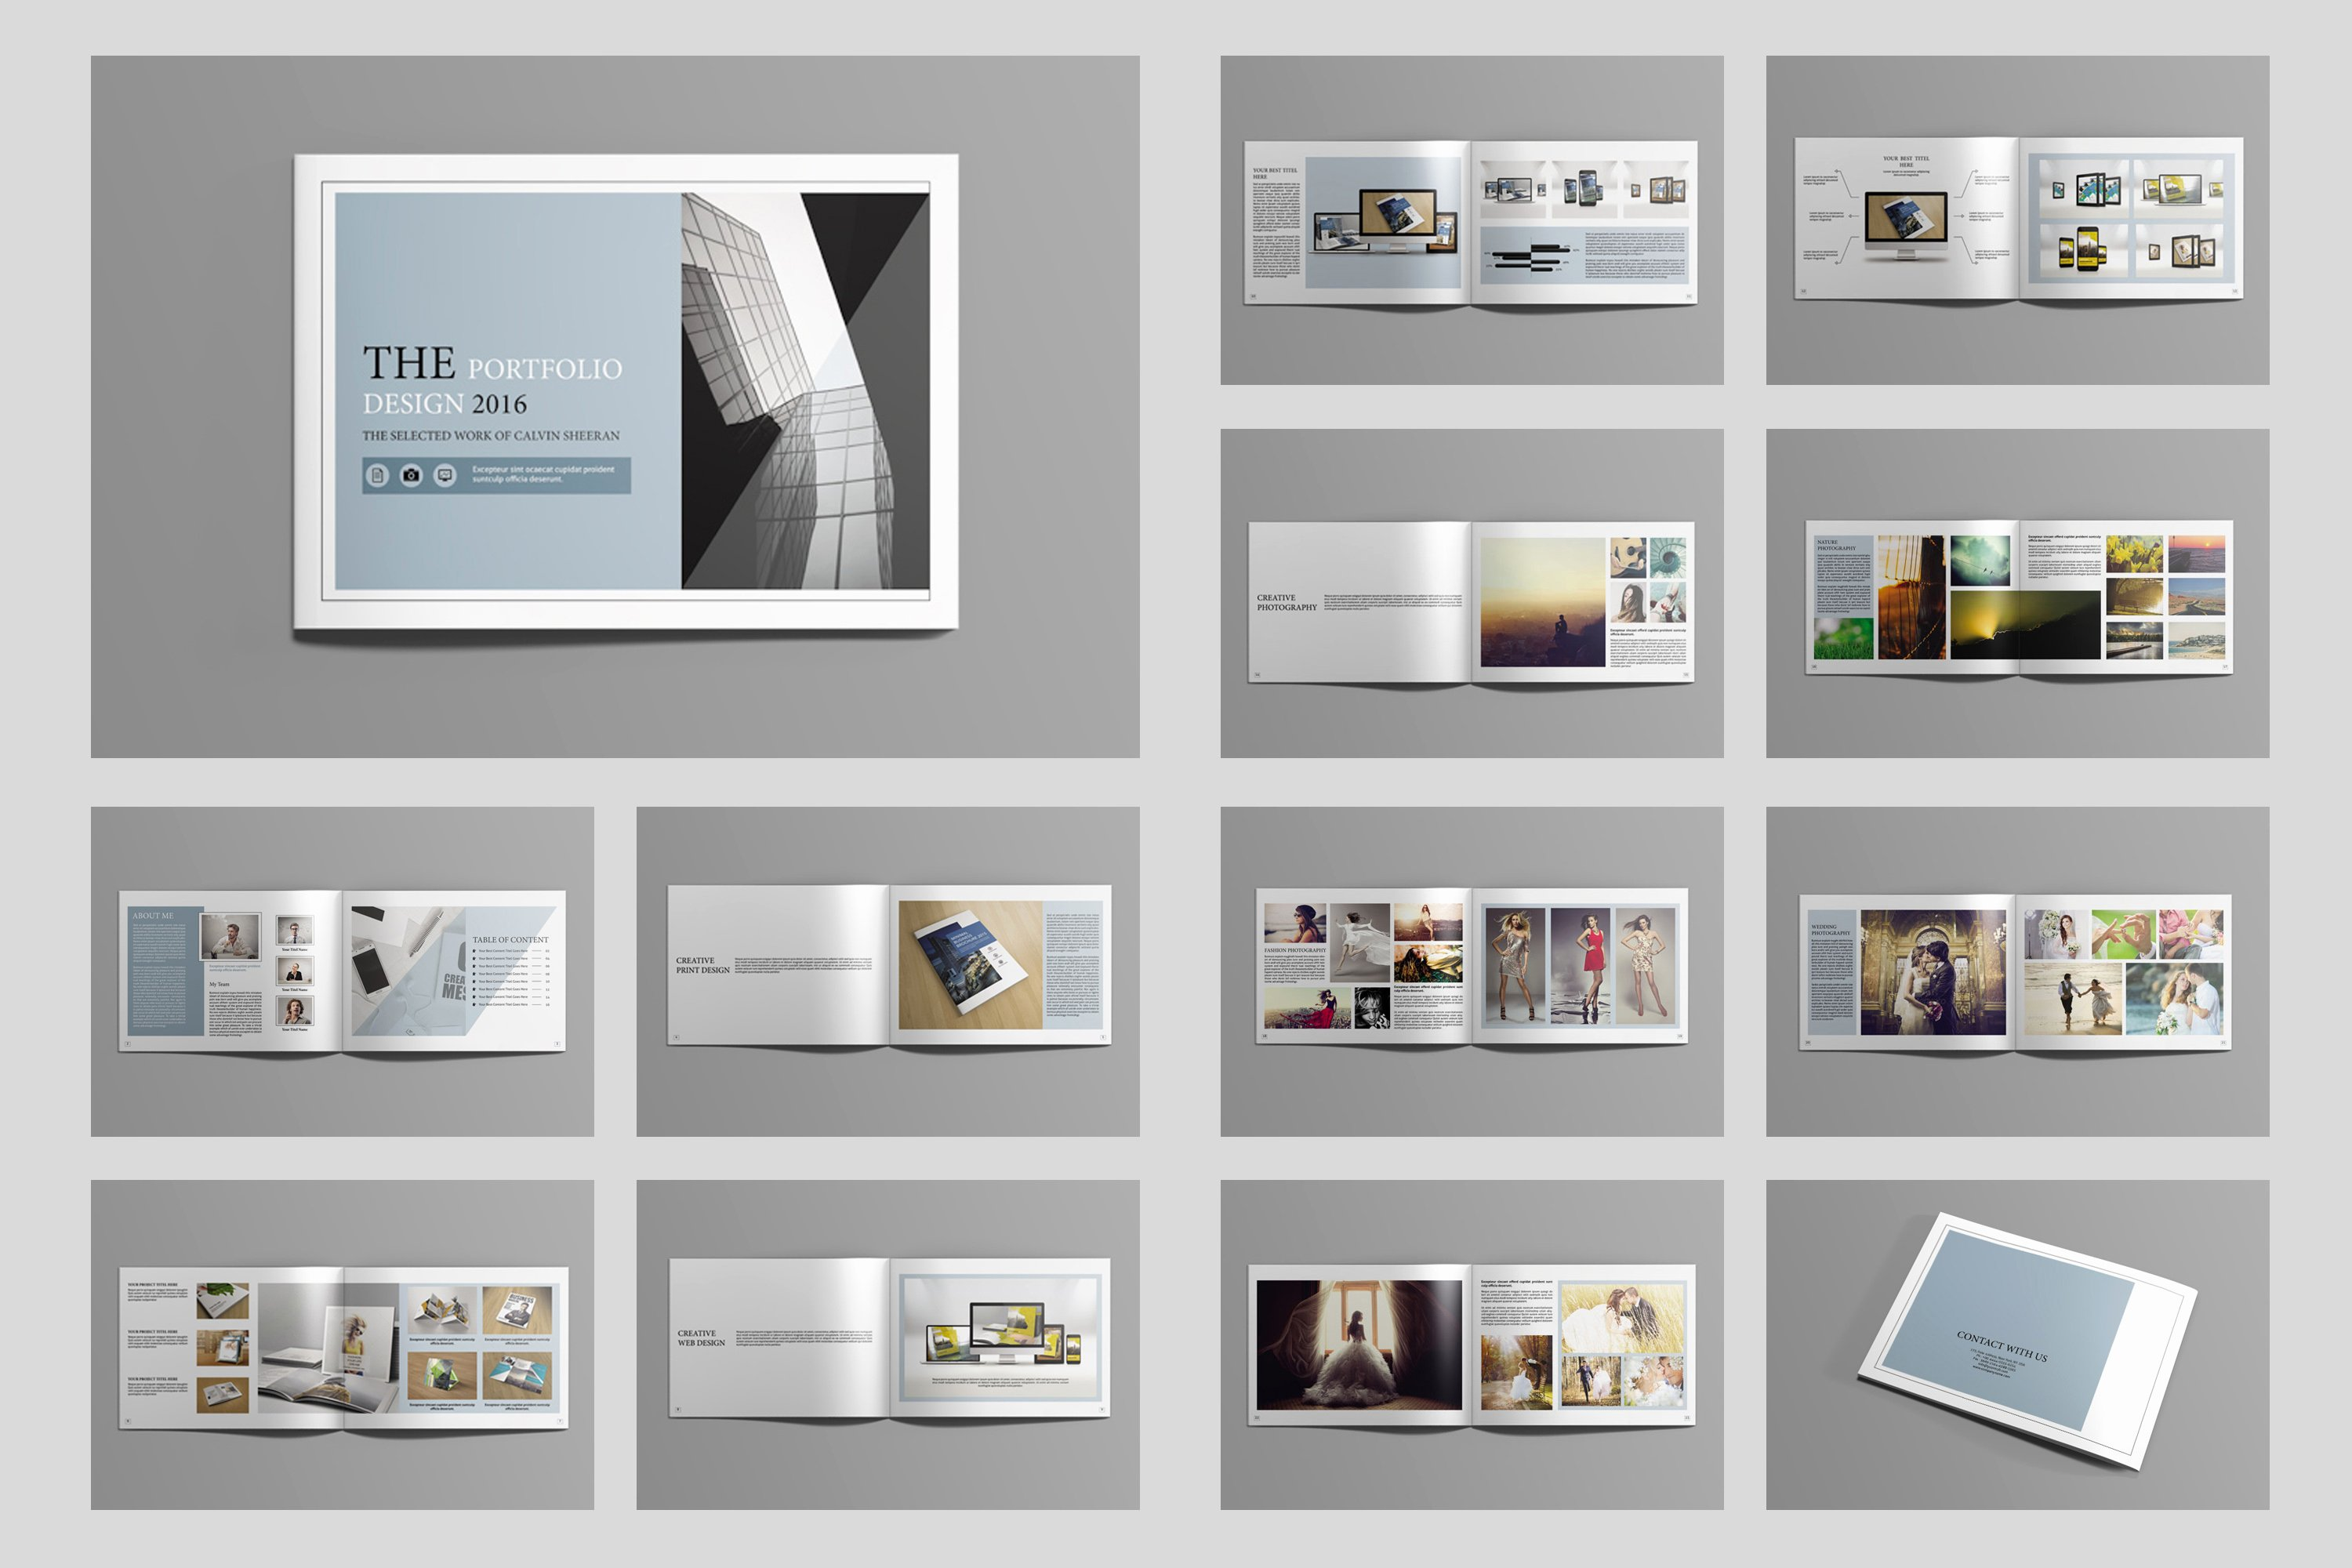 Architecture Portfolio Template Indesign Fresh Indesign Portfolio Brochure V419 Brochure Templates On